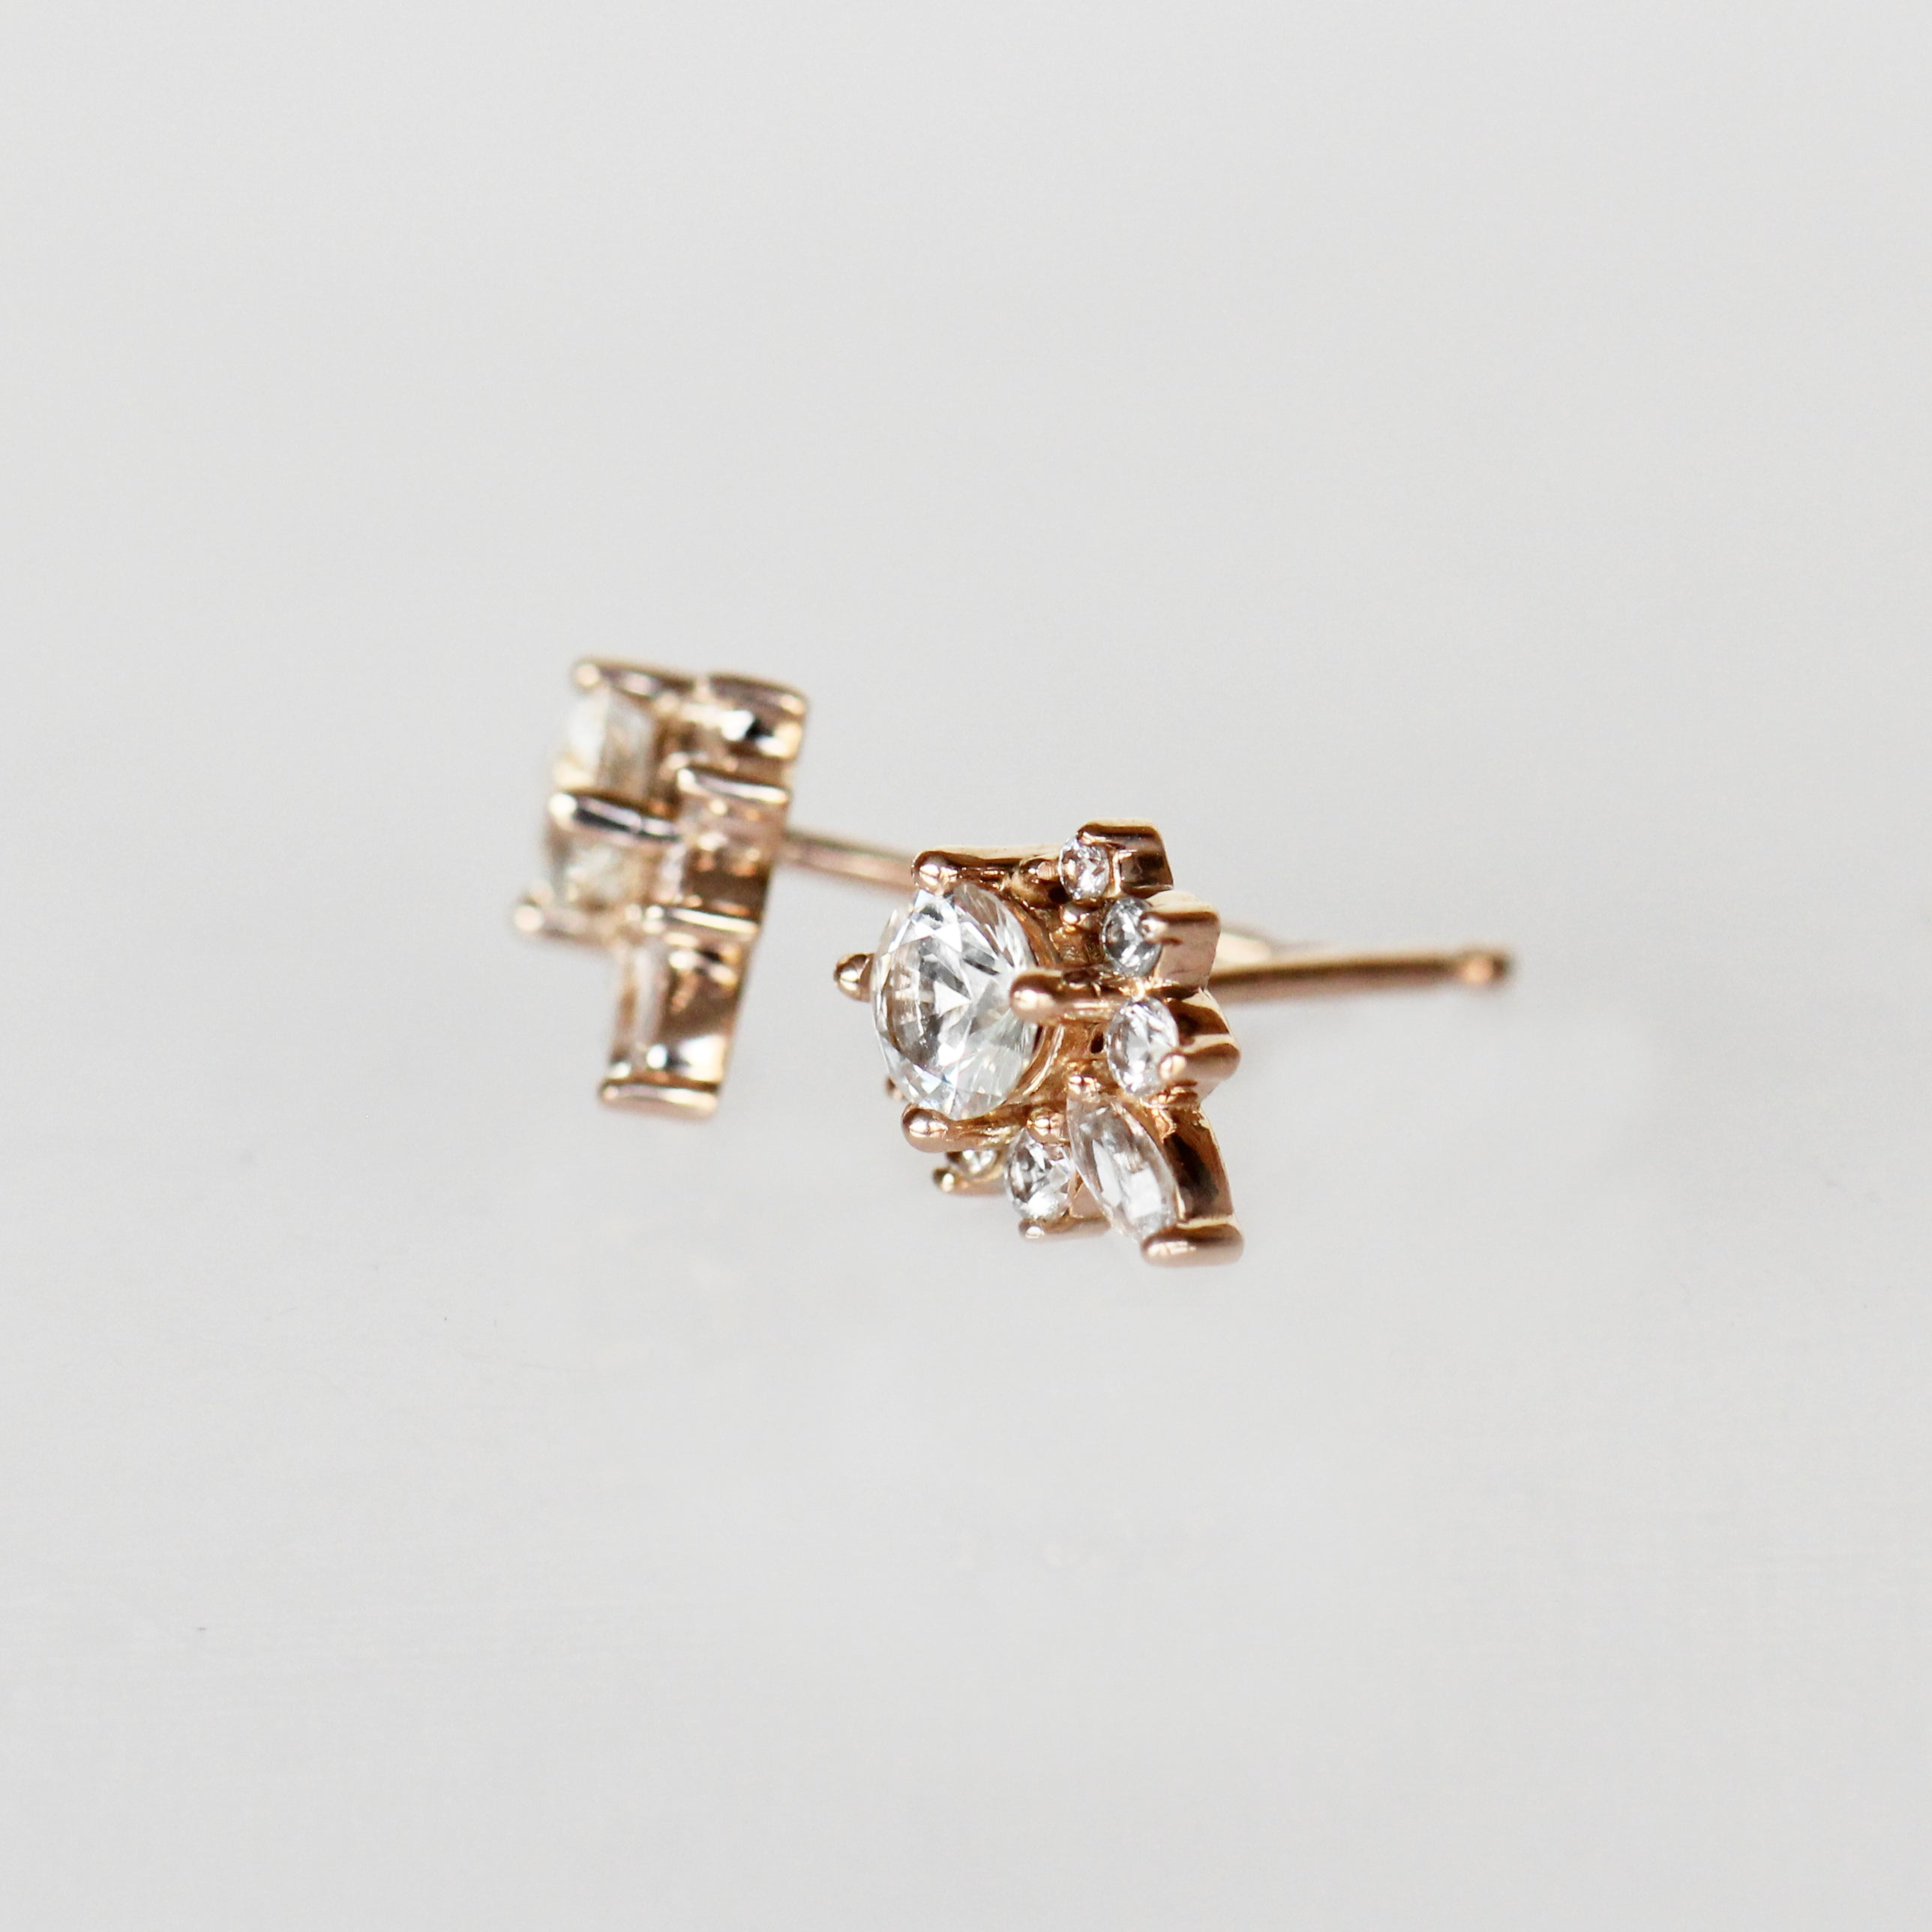 Zoe Earrings with White Sapphires- 14k Rose Gold- Ready to Ship - Salt & Pepper Celestial Diamond Engagement Rings and Wedding Bands  by Midwinter Co.